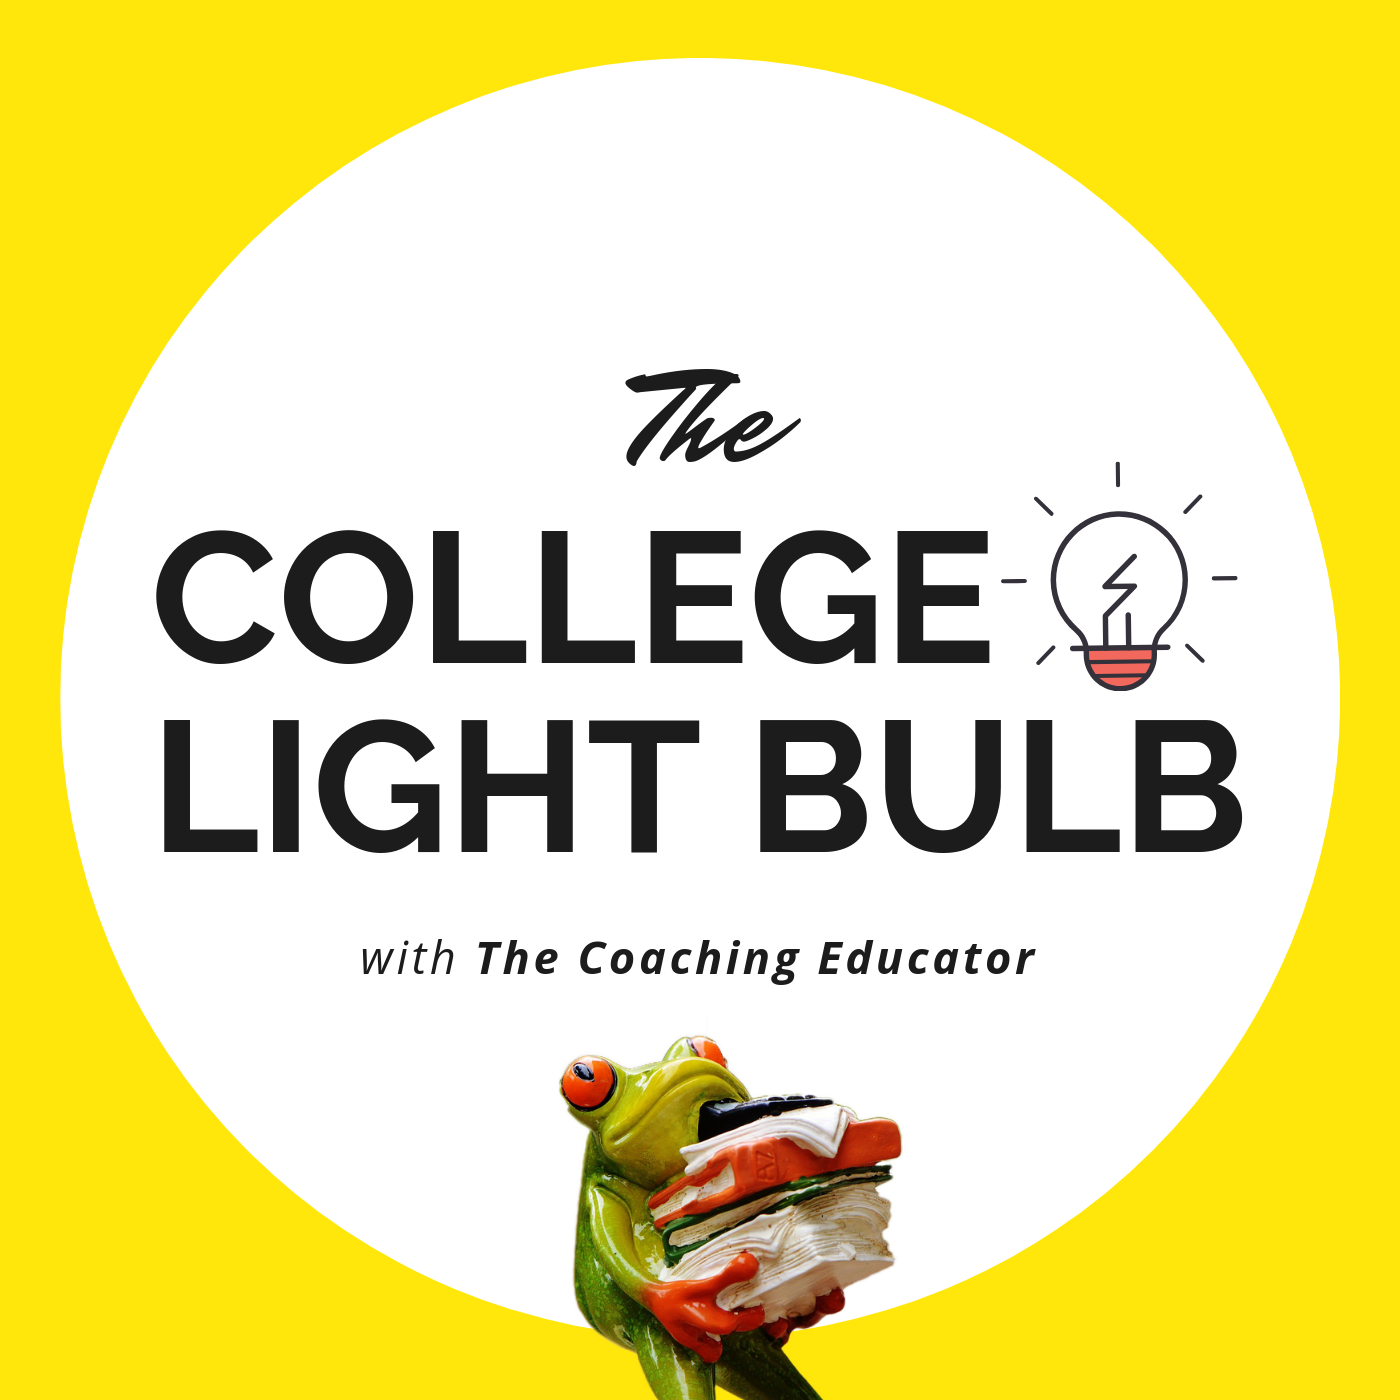 The College Light Bulb